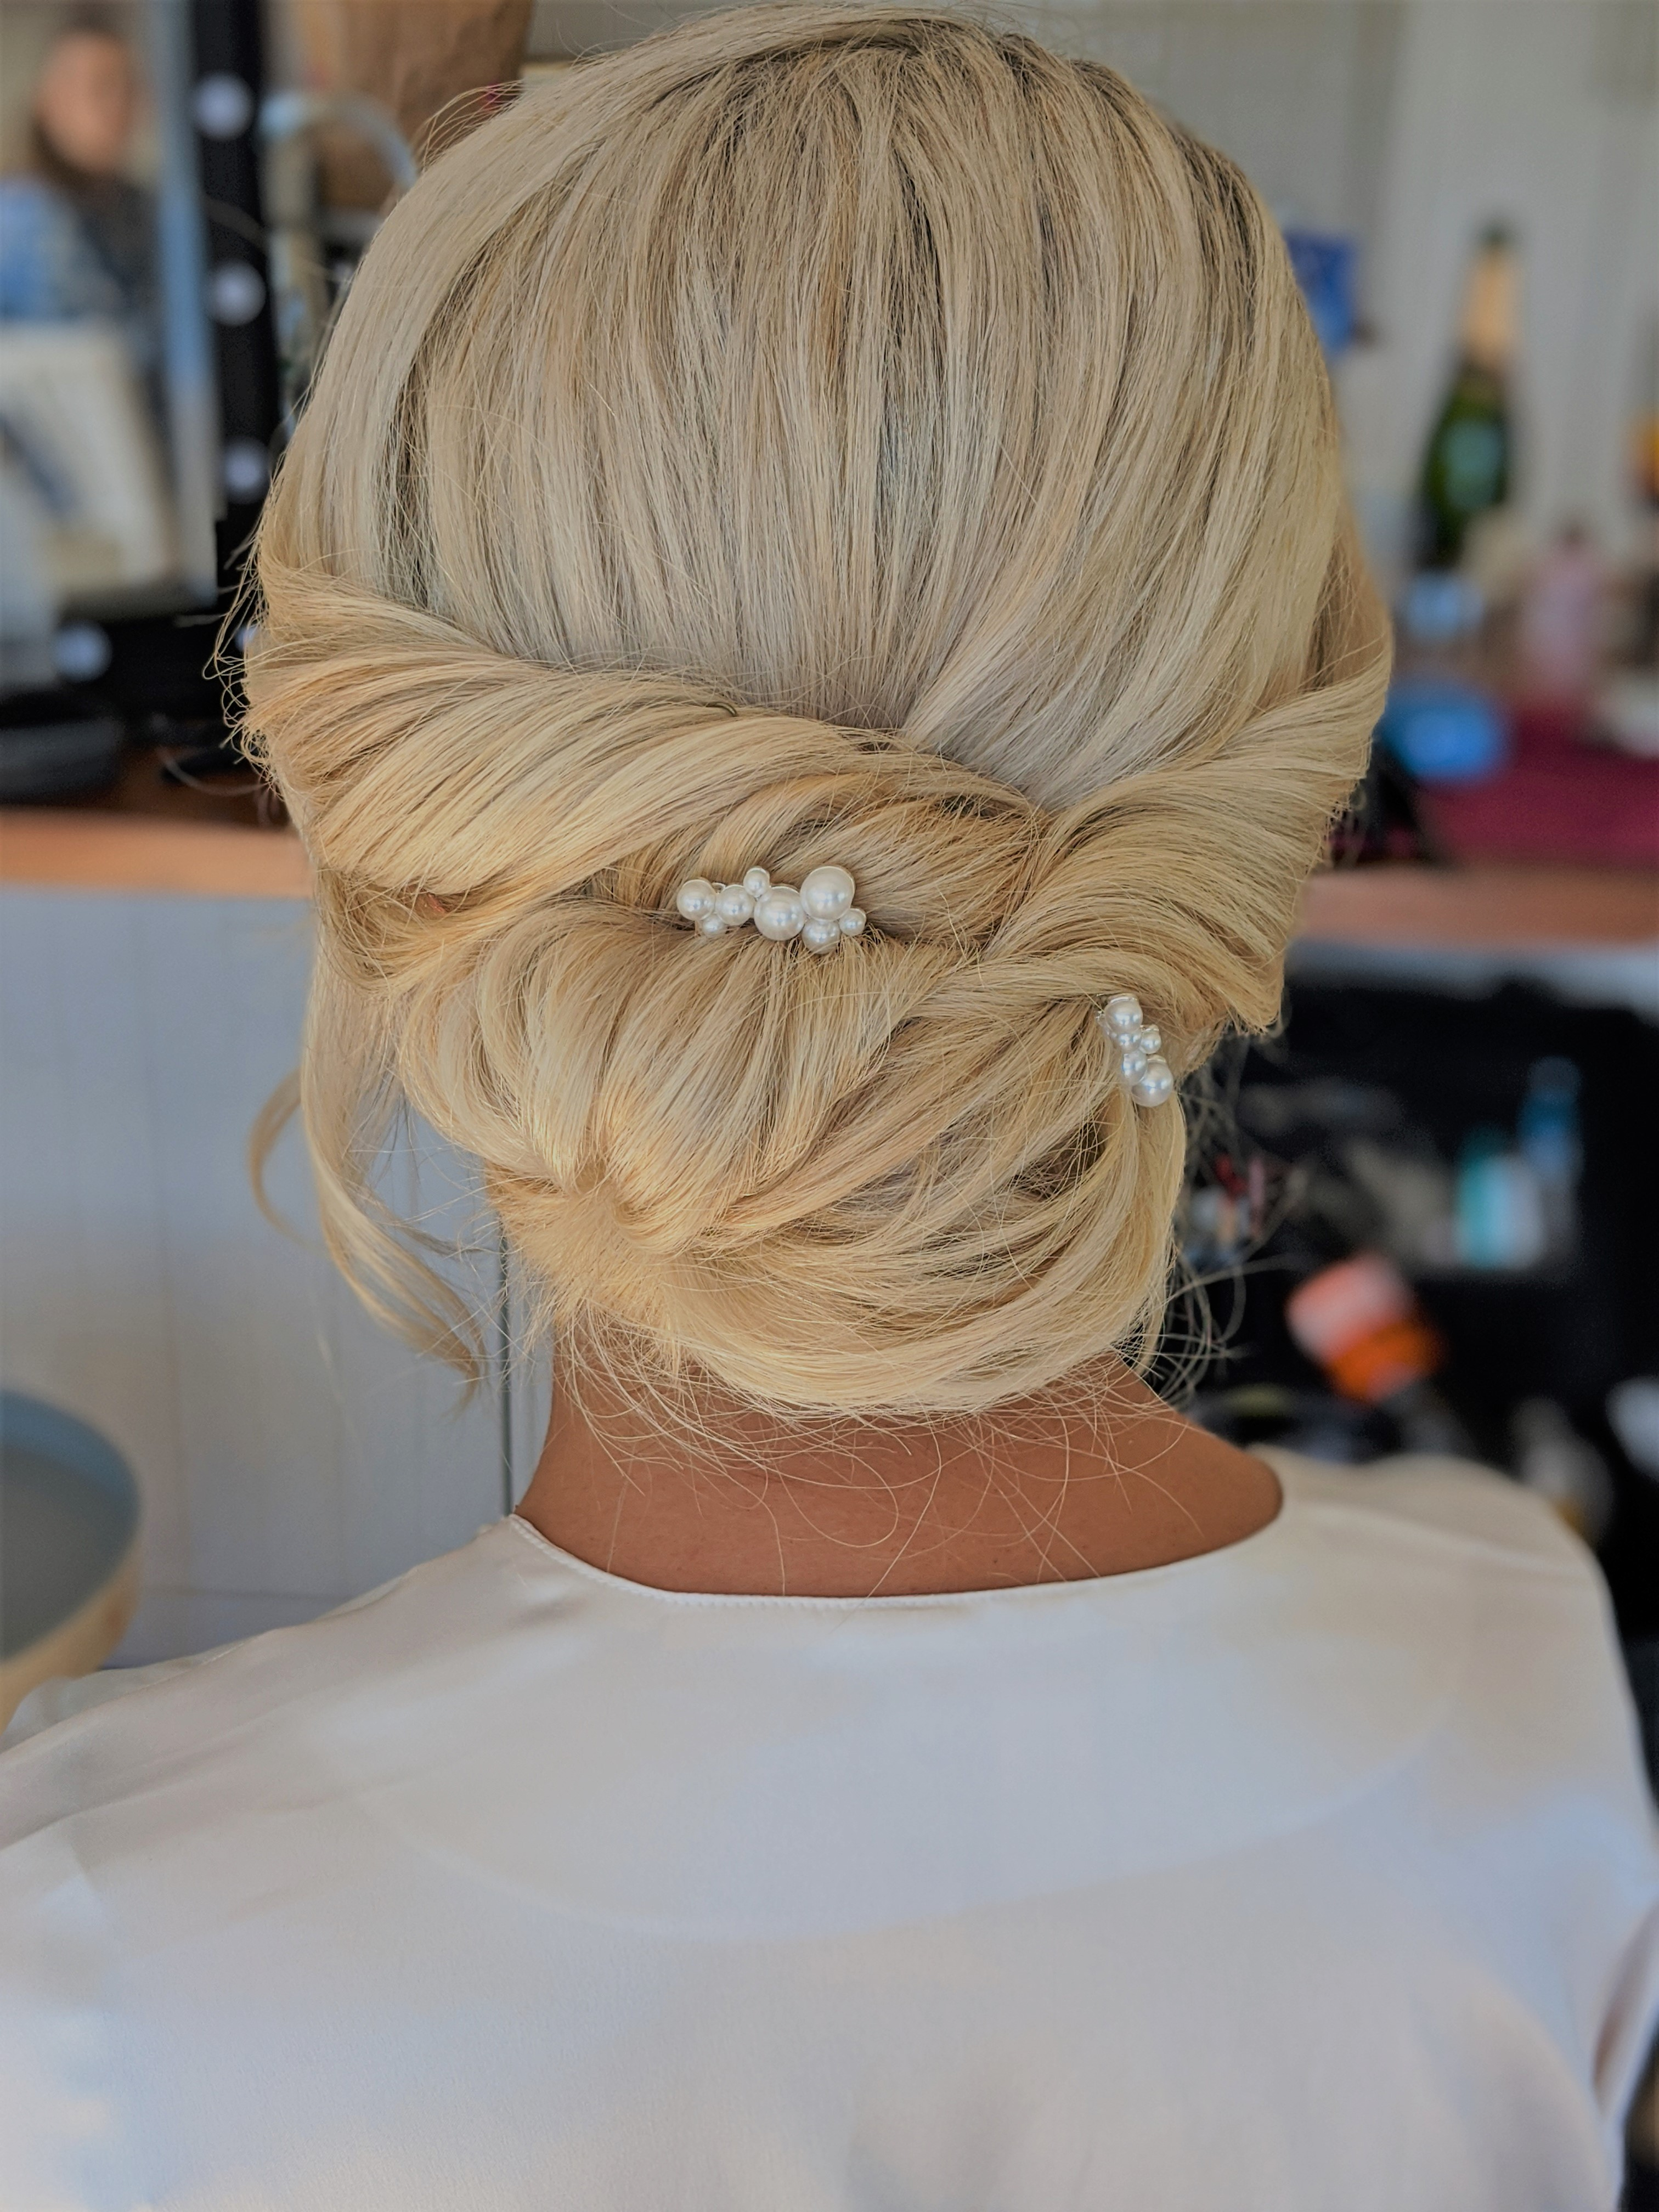 Hairstyling- Services image